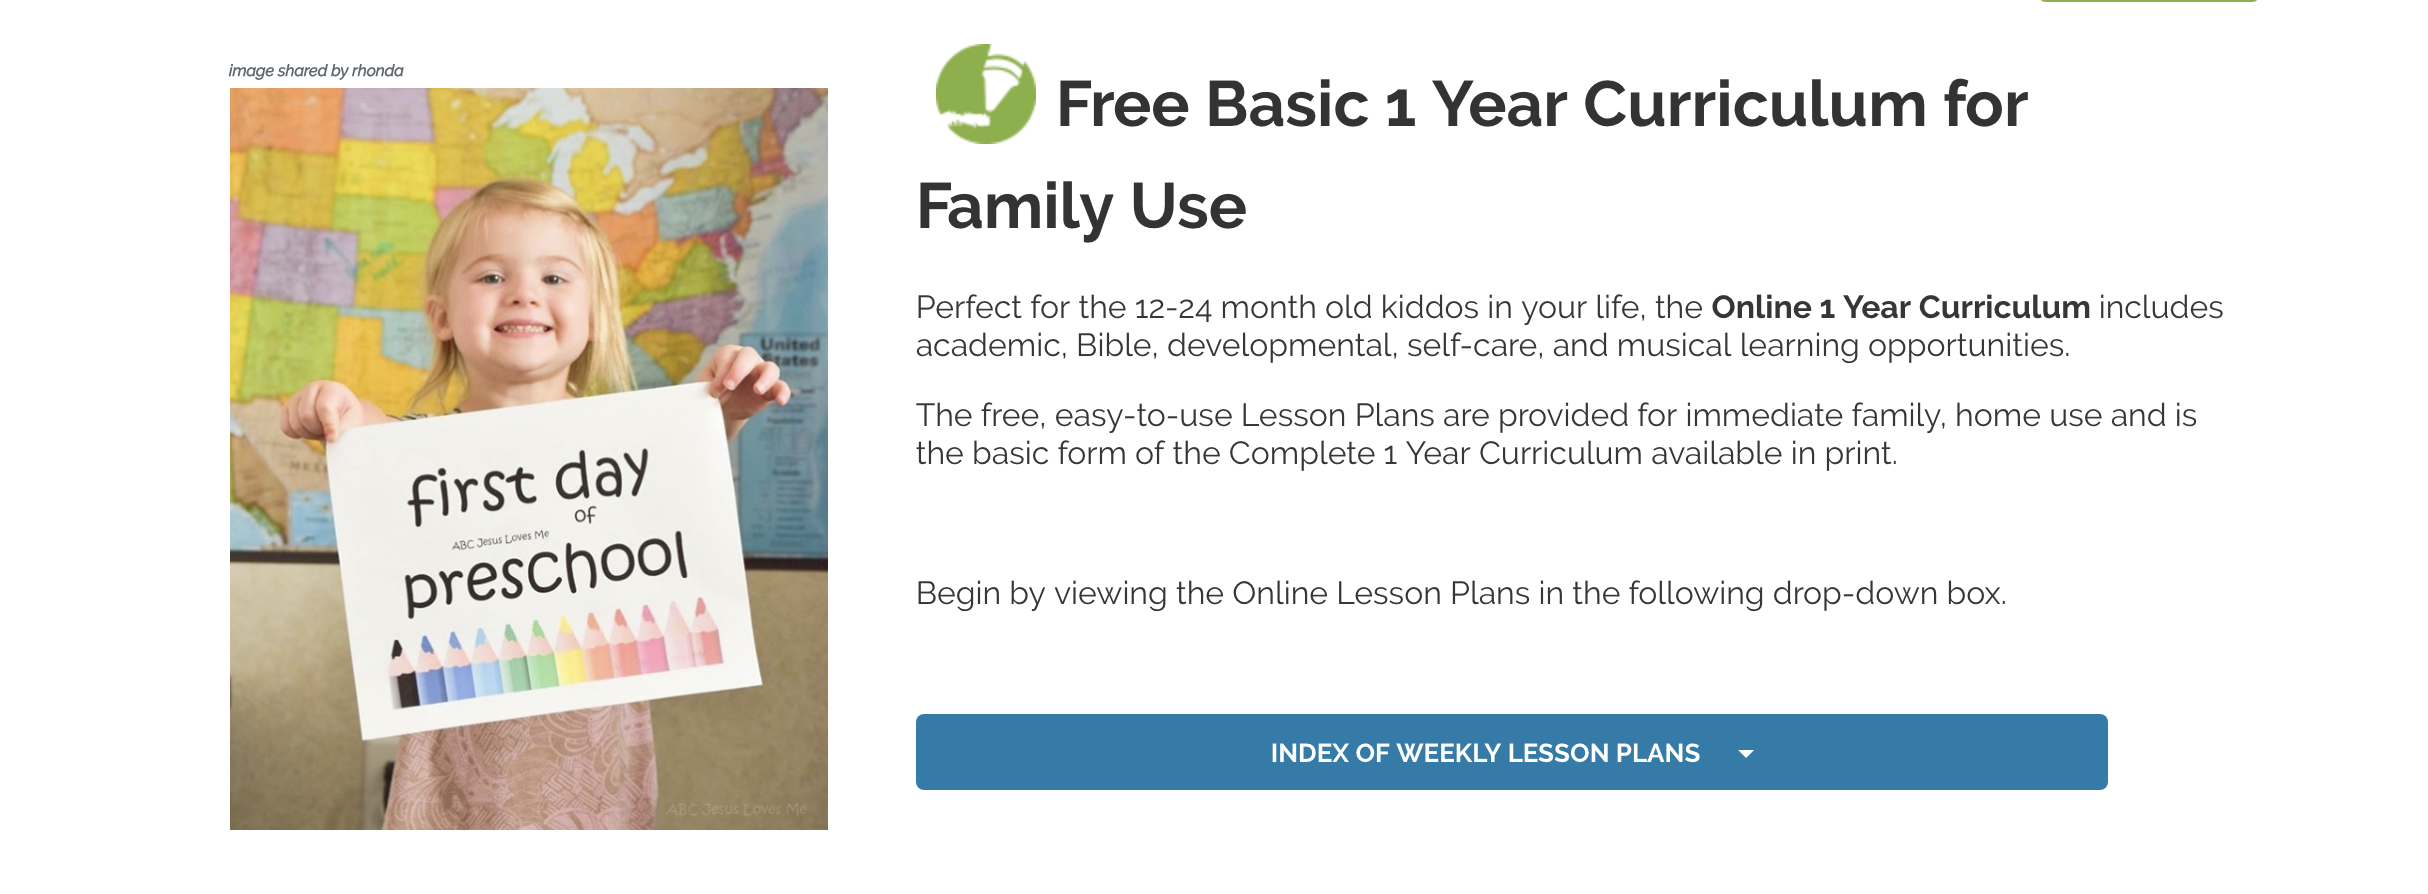 "Click on the ""INDEX OF WEEKLY LESSON PLANS"" for free online access to each weekly lesson plan and supply list."